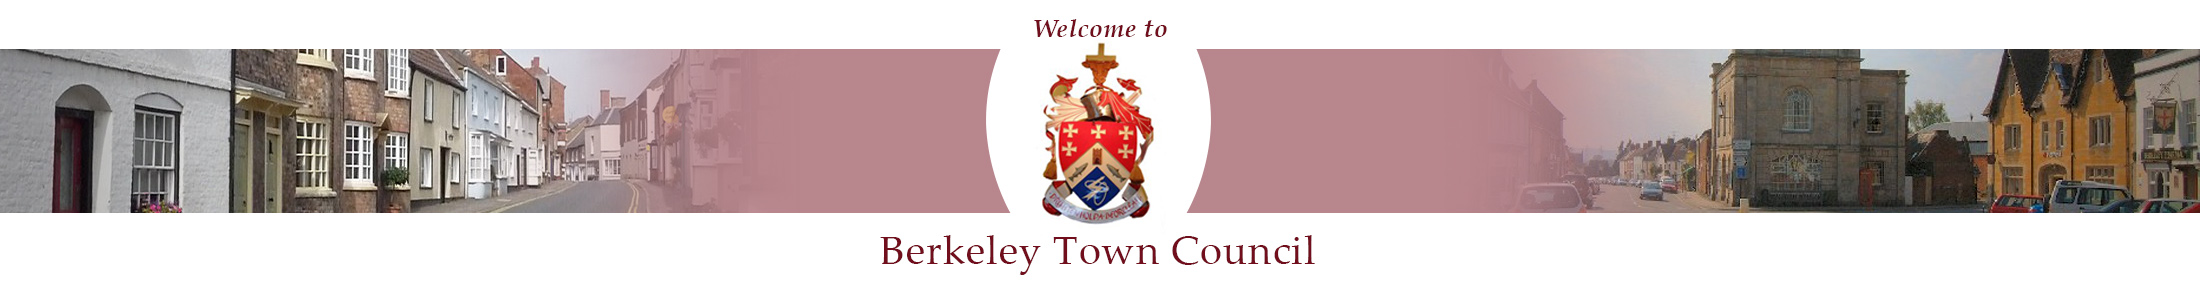 Header Image for Berkeley Town Council